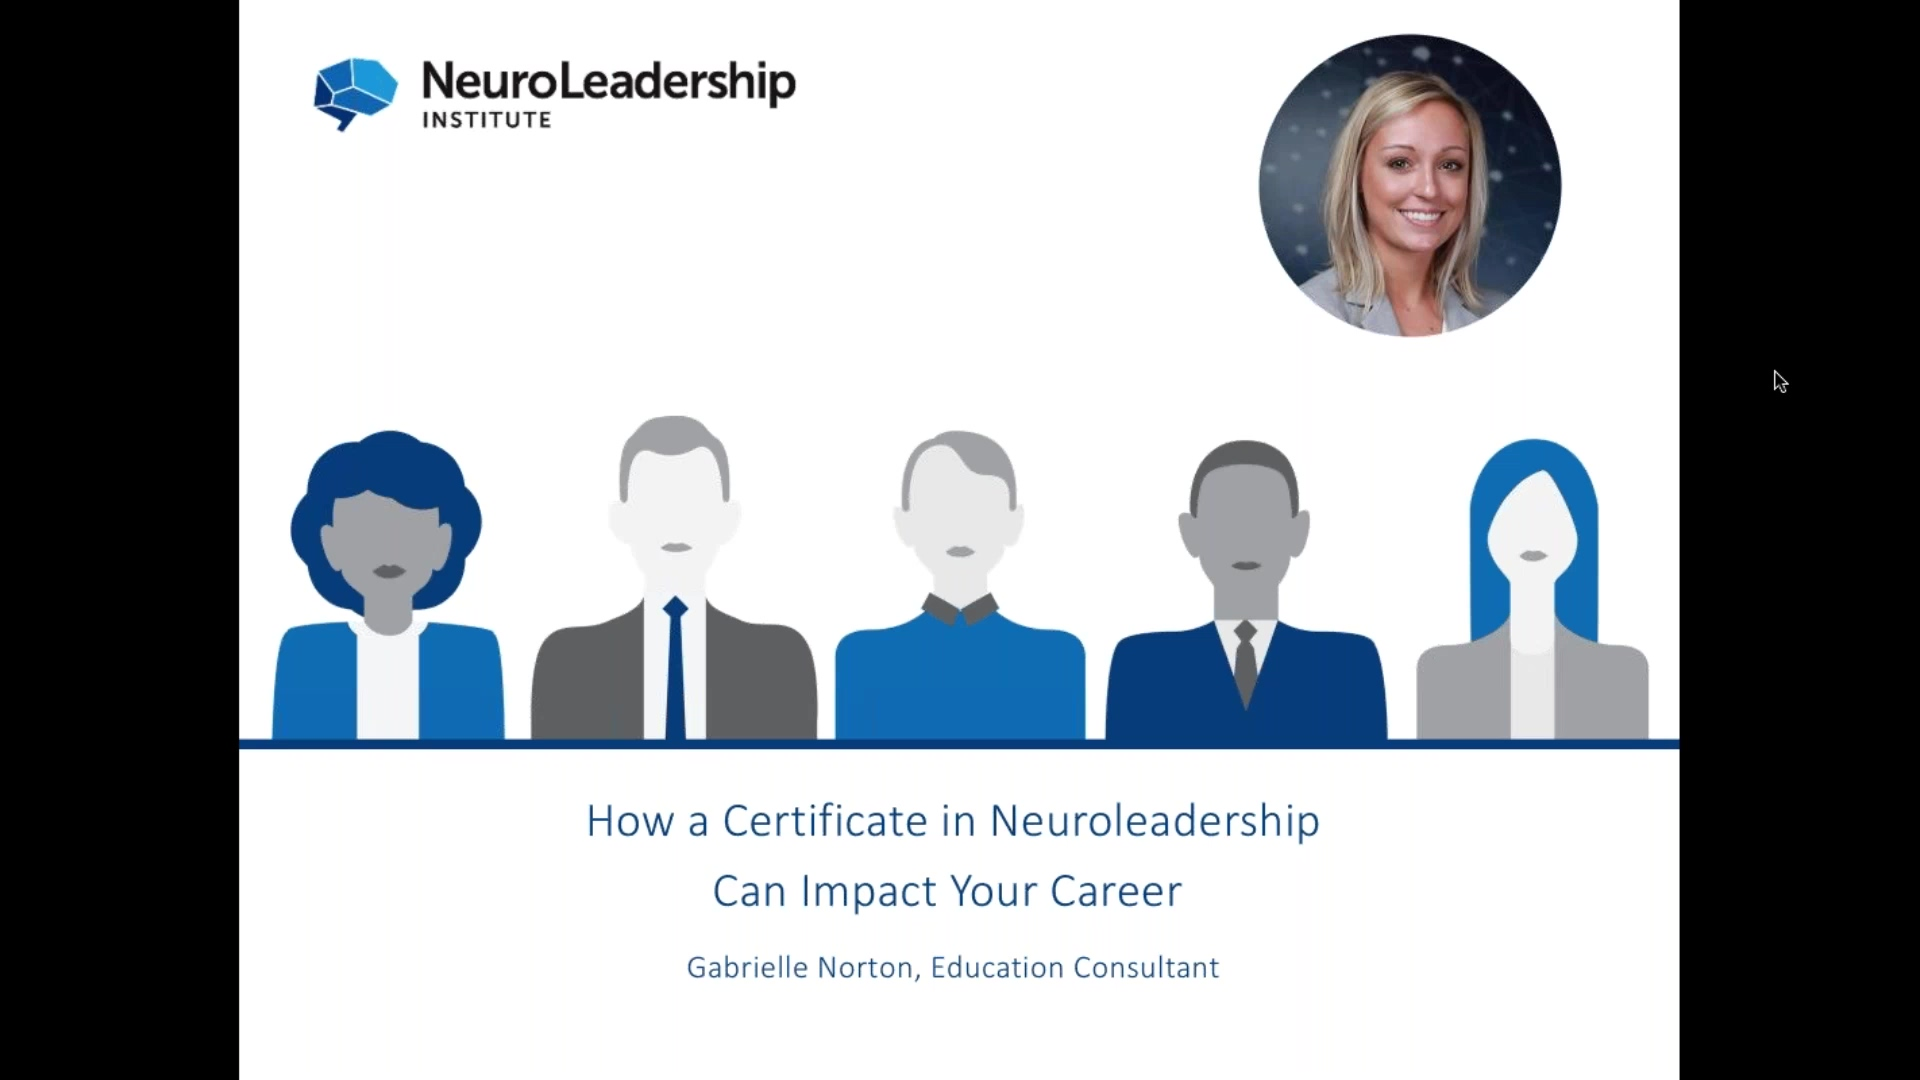 How a Certificate in Neuroleadership Can Impact Your Career (North America & EMEA)